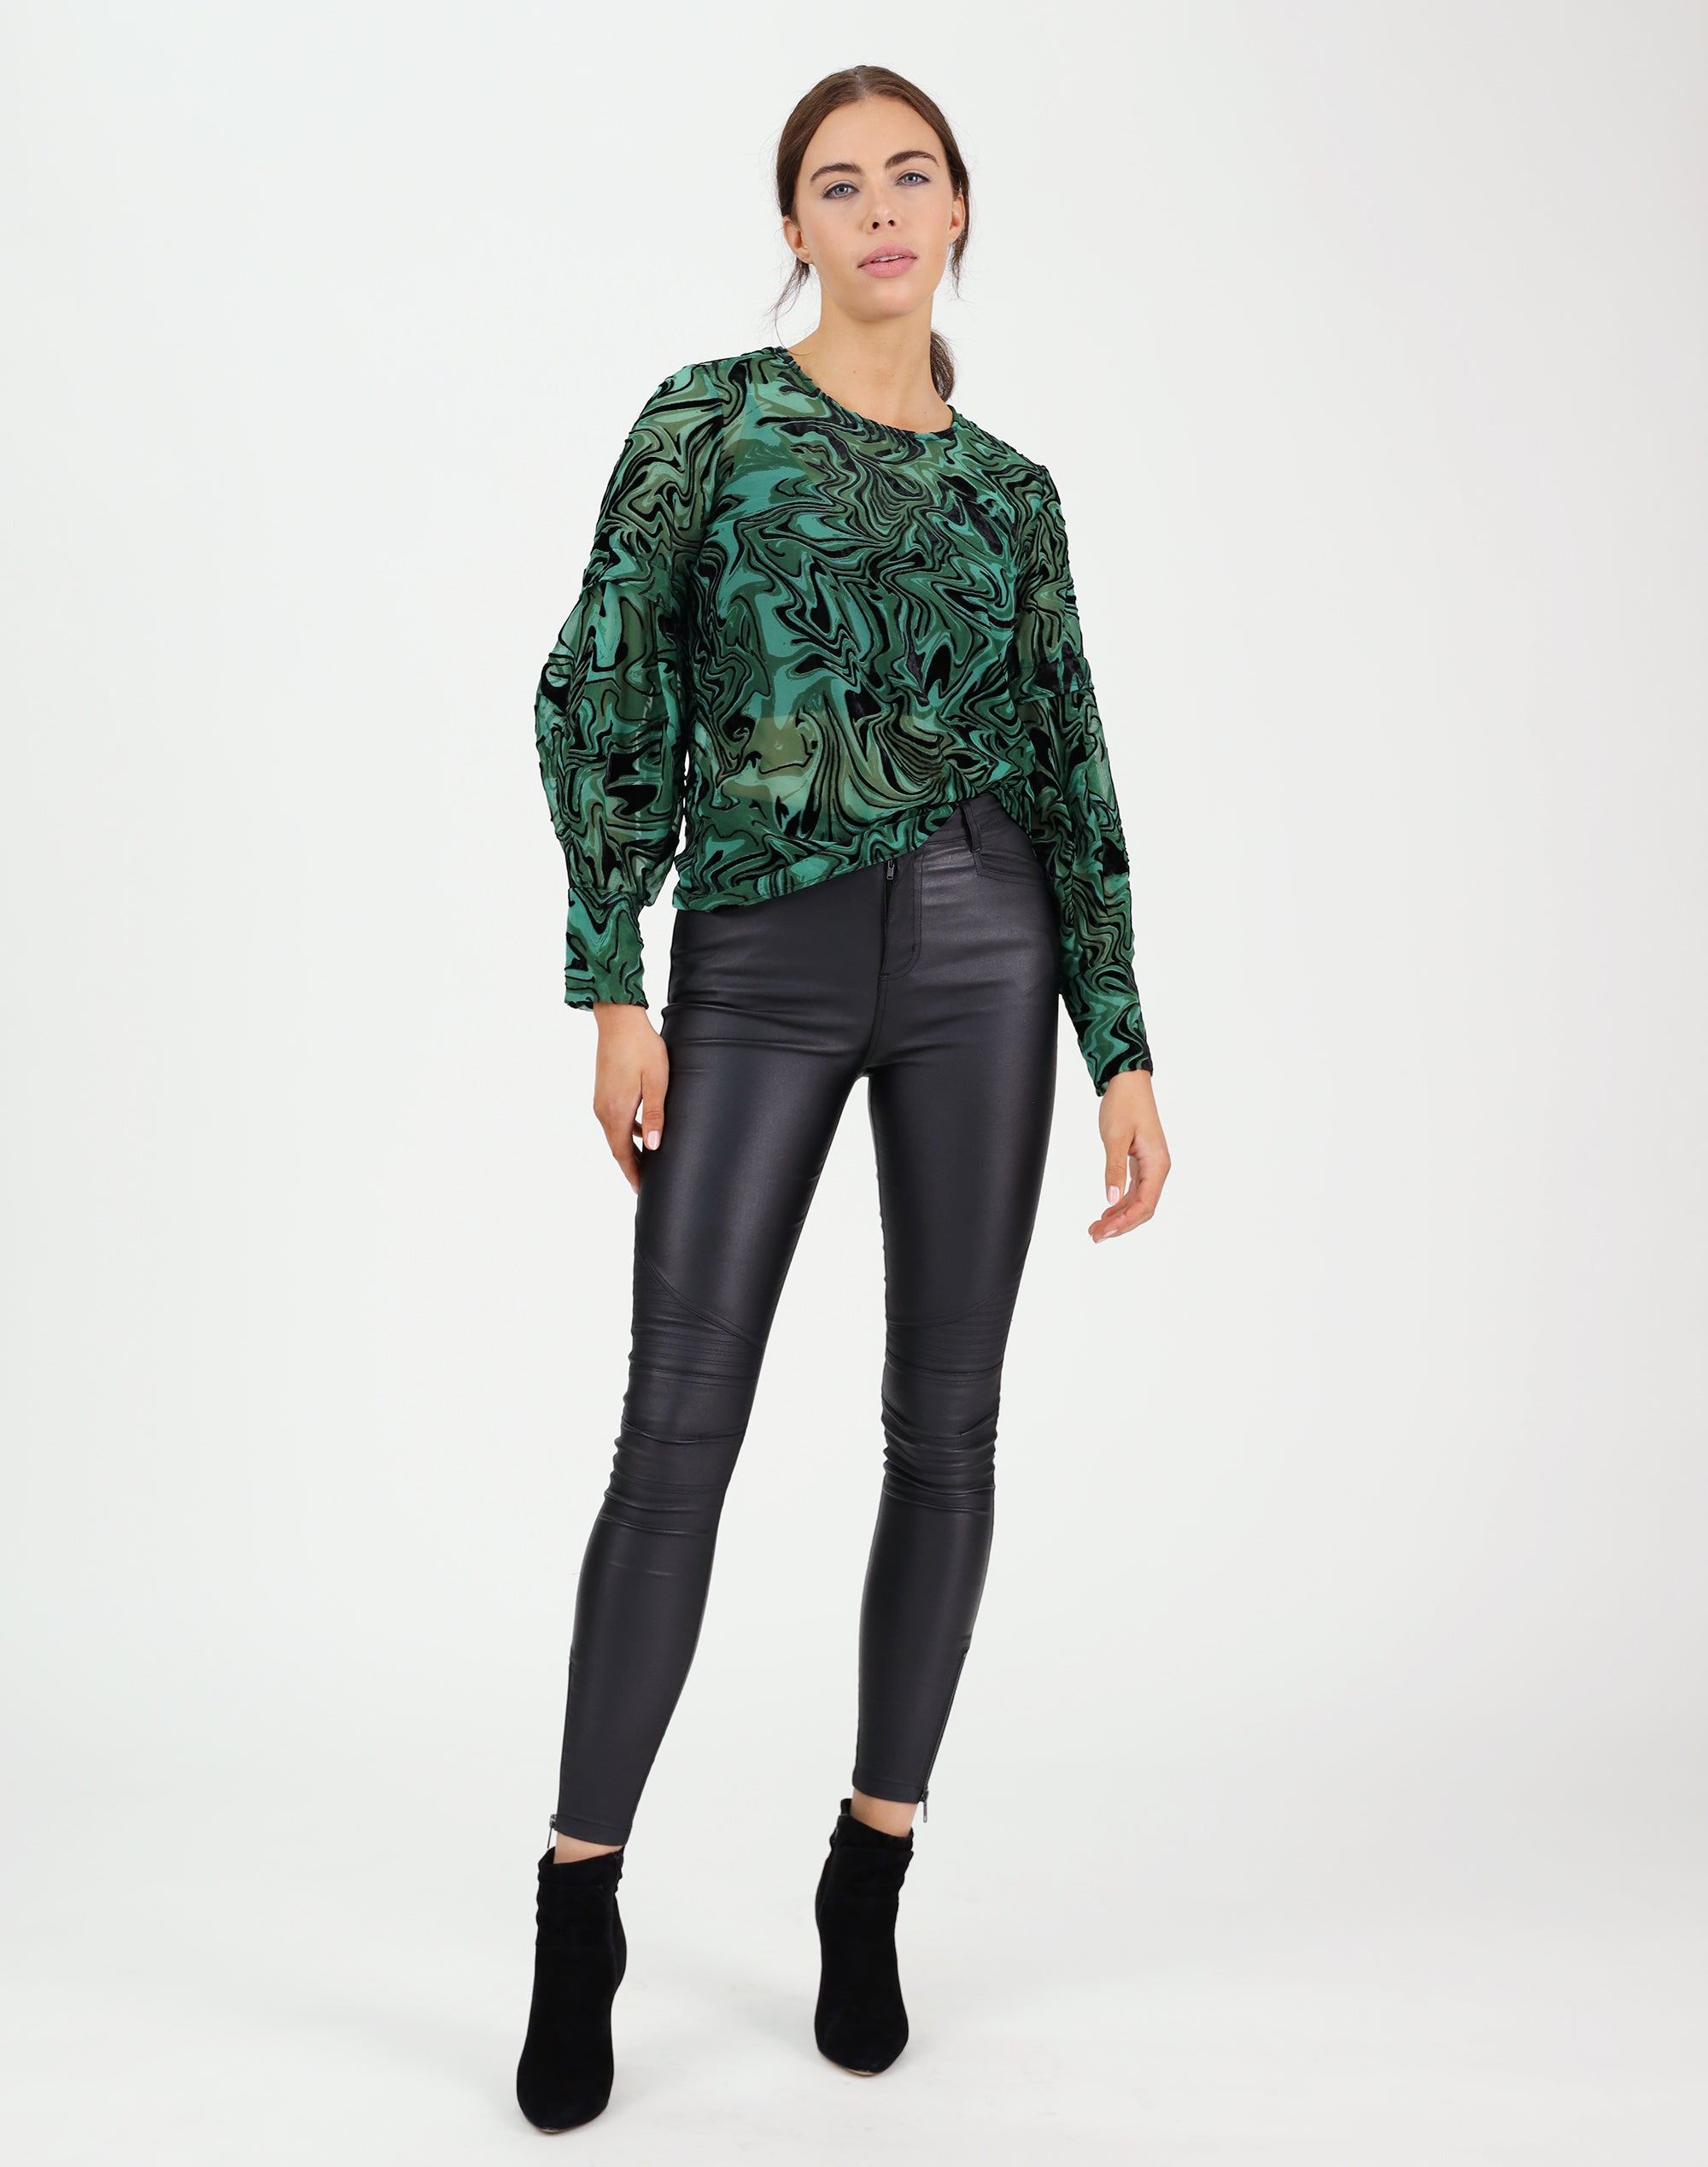 Emerald Burn Out Top